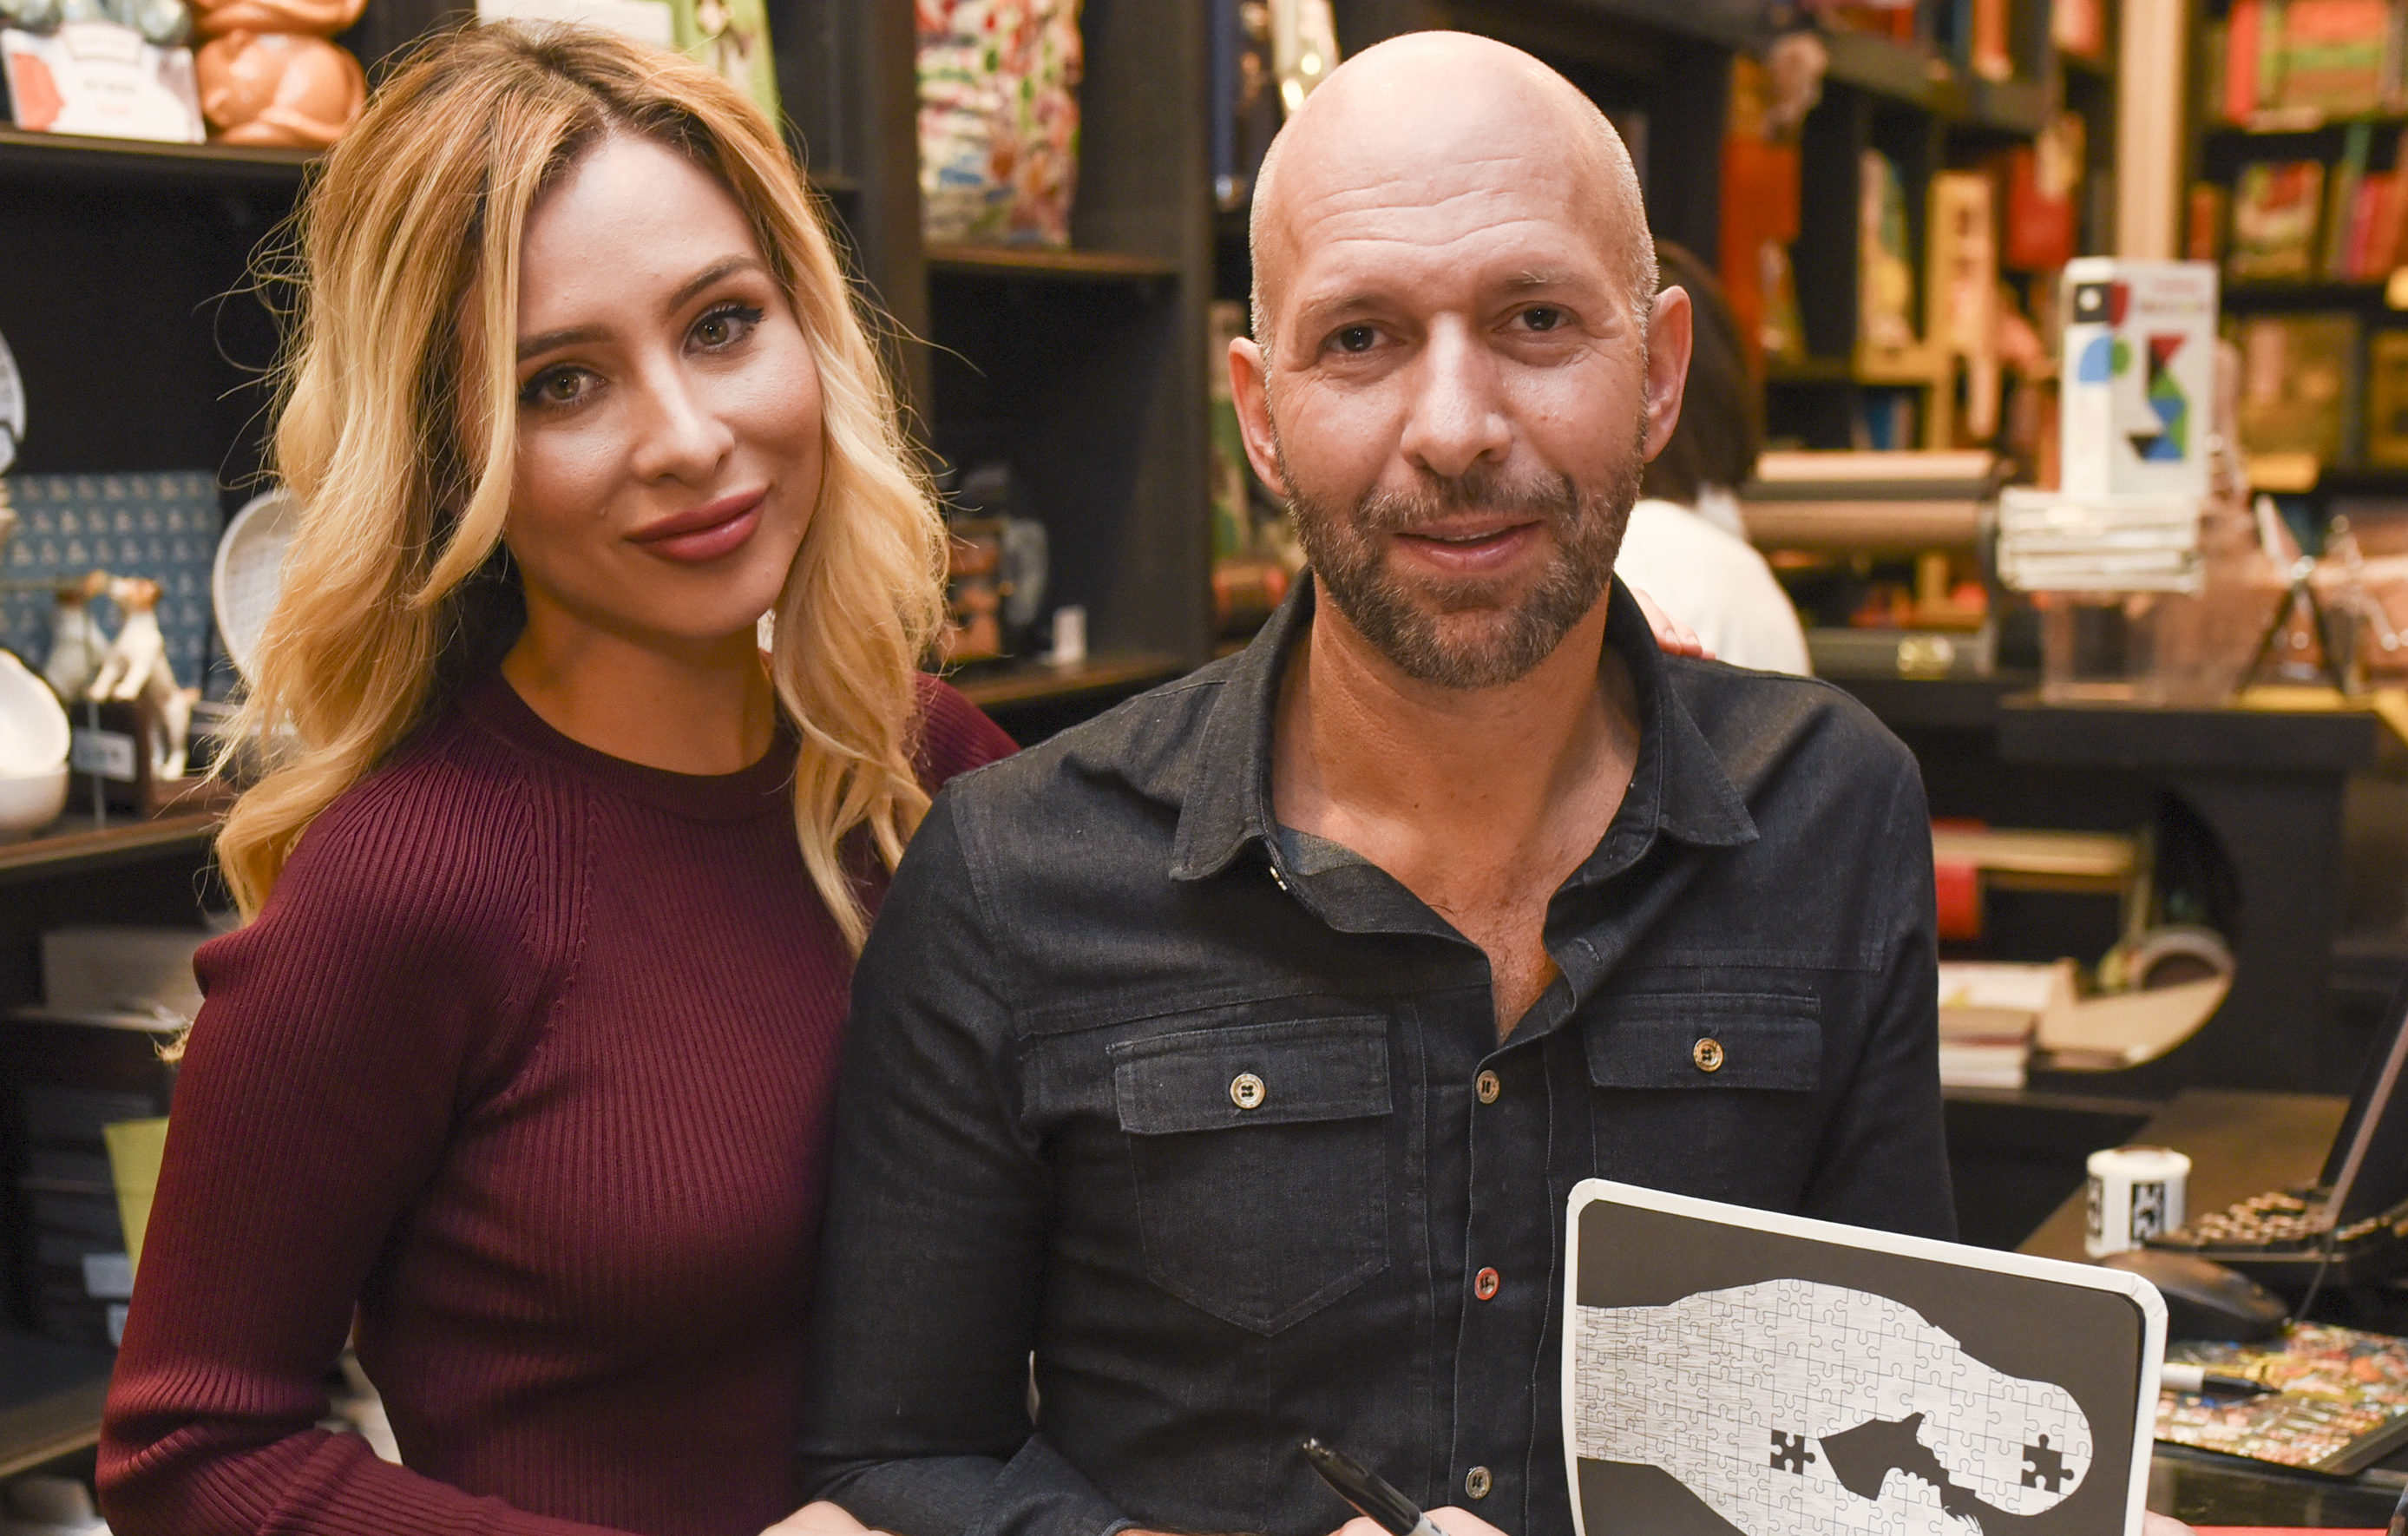 Neil Strauss and then wife Igrid De La O at book signing in 2015 (Michael Bezjian/WireImage)